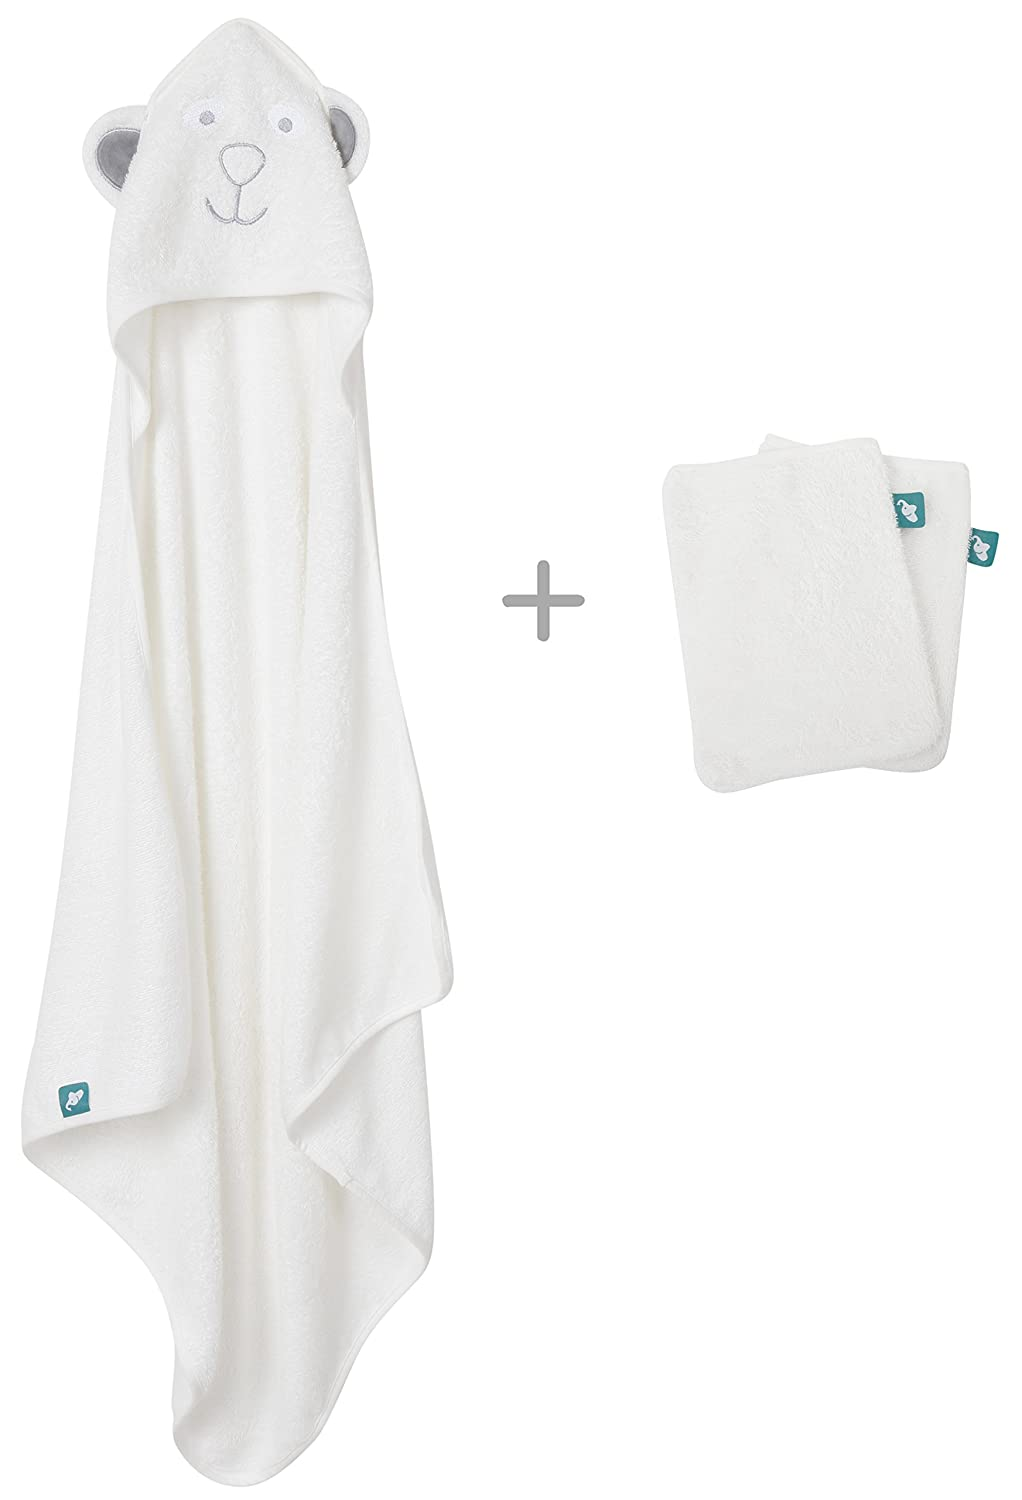 Premium 3-Piece Bamboo Hooded Baby Towel Set by Ellyfante | Large Hooded Towel (x1) plus Bamboo Bath Wash Mitts (x2) | Ideal Bath Towel Set for Babies to Toddlers | Extra soft and thick material for added comfort | EBAM007